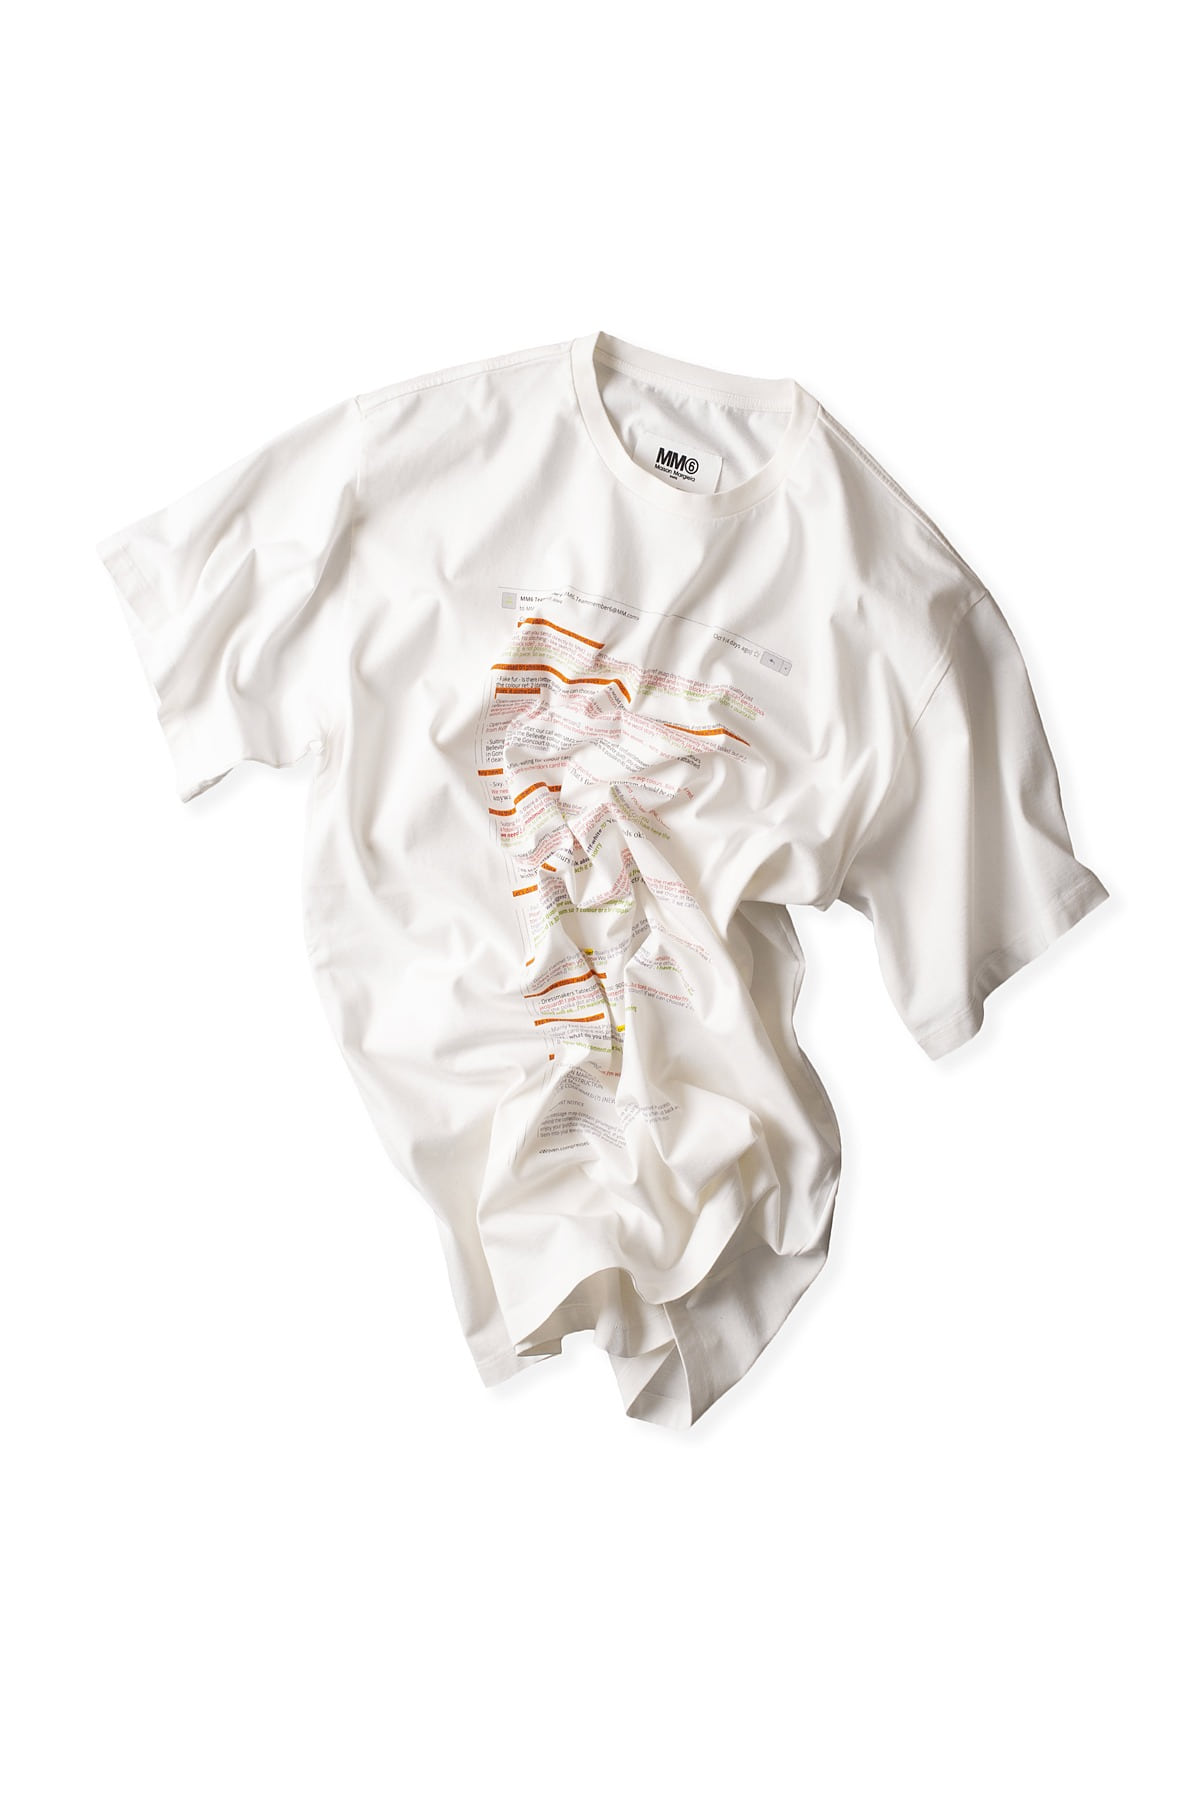 MM6 Maison Margiela : E-Mail T-shirt (White)